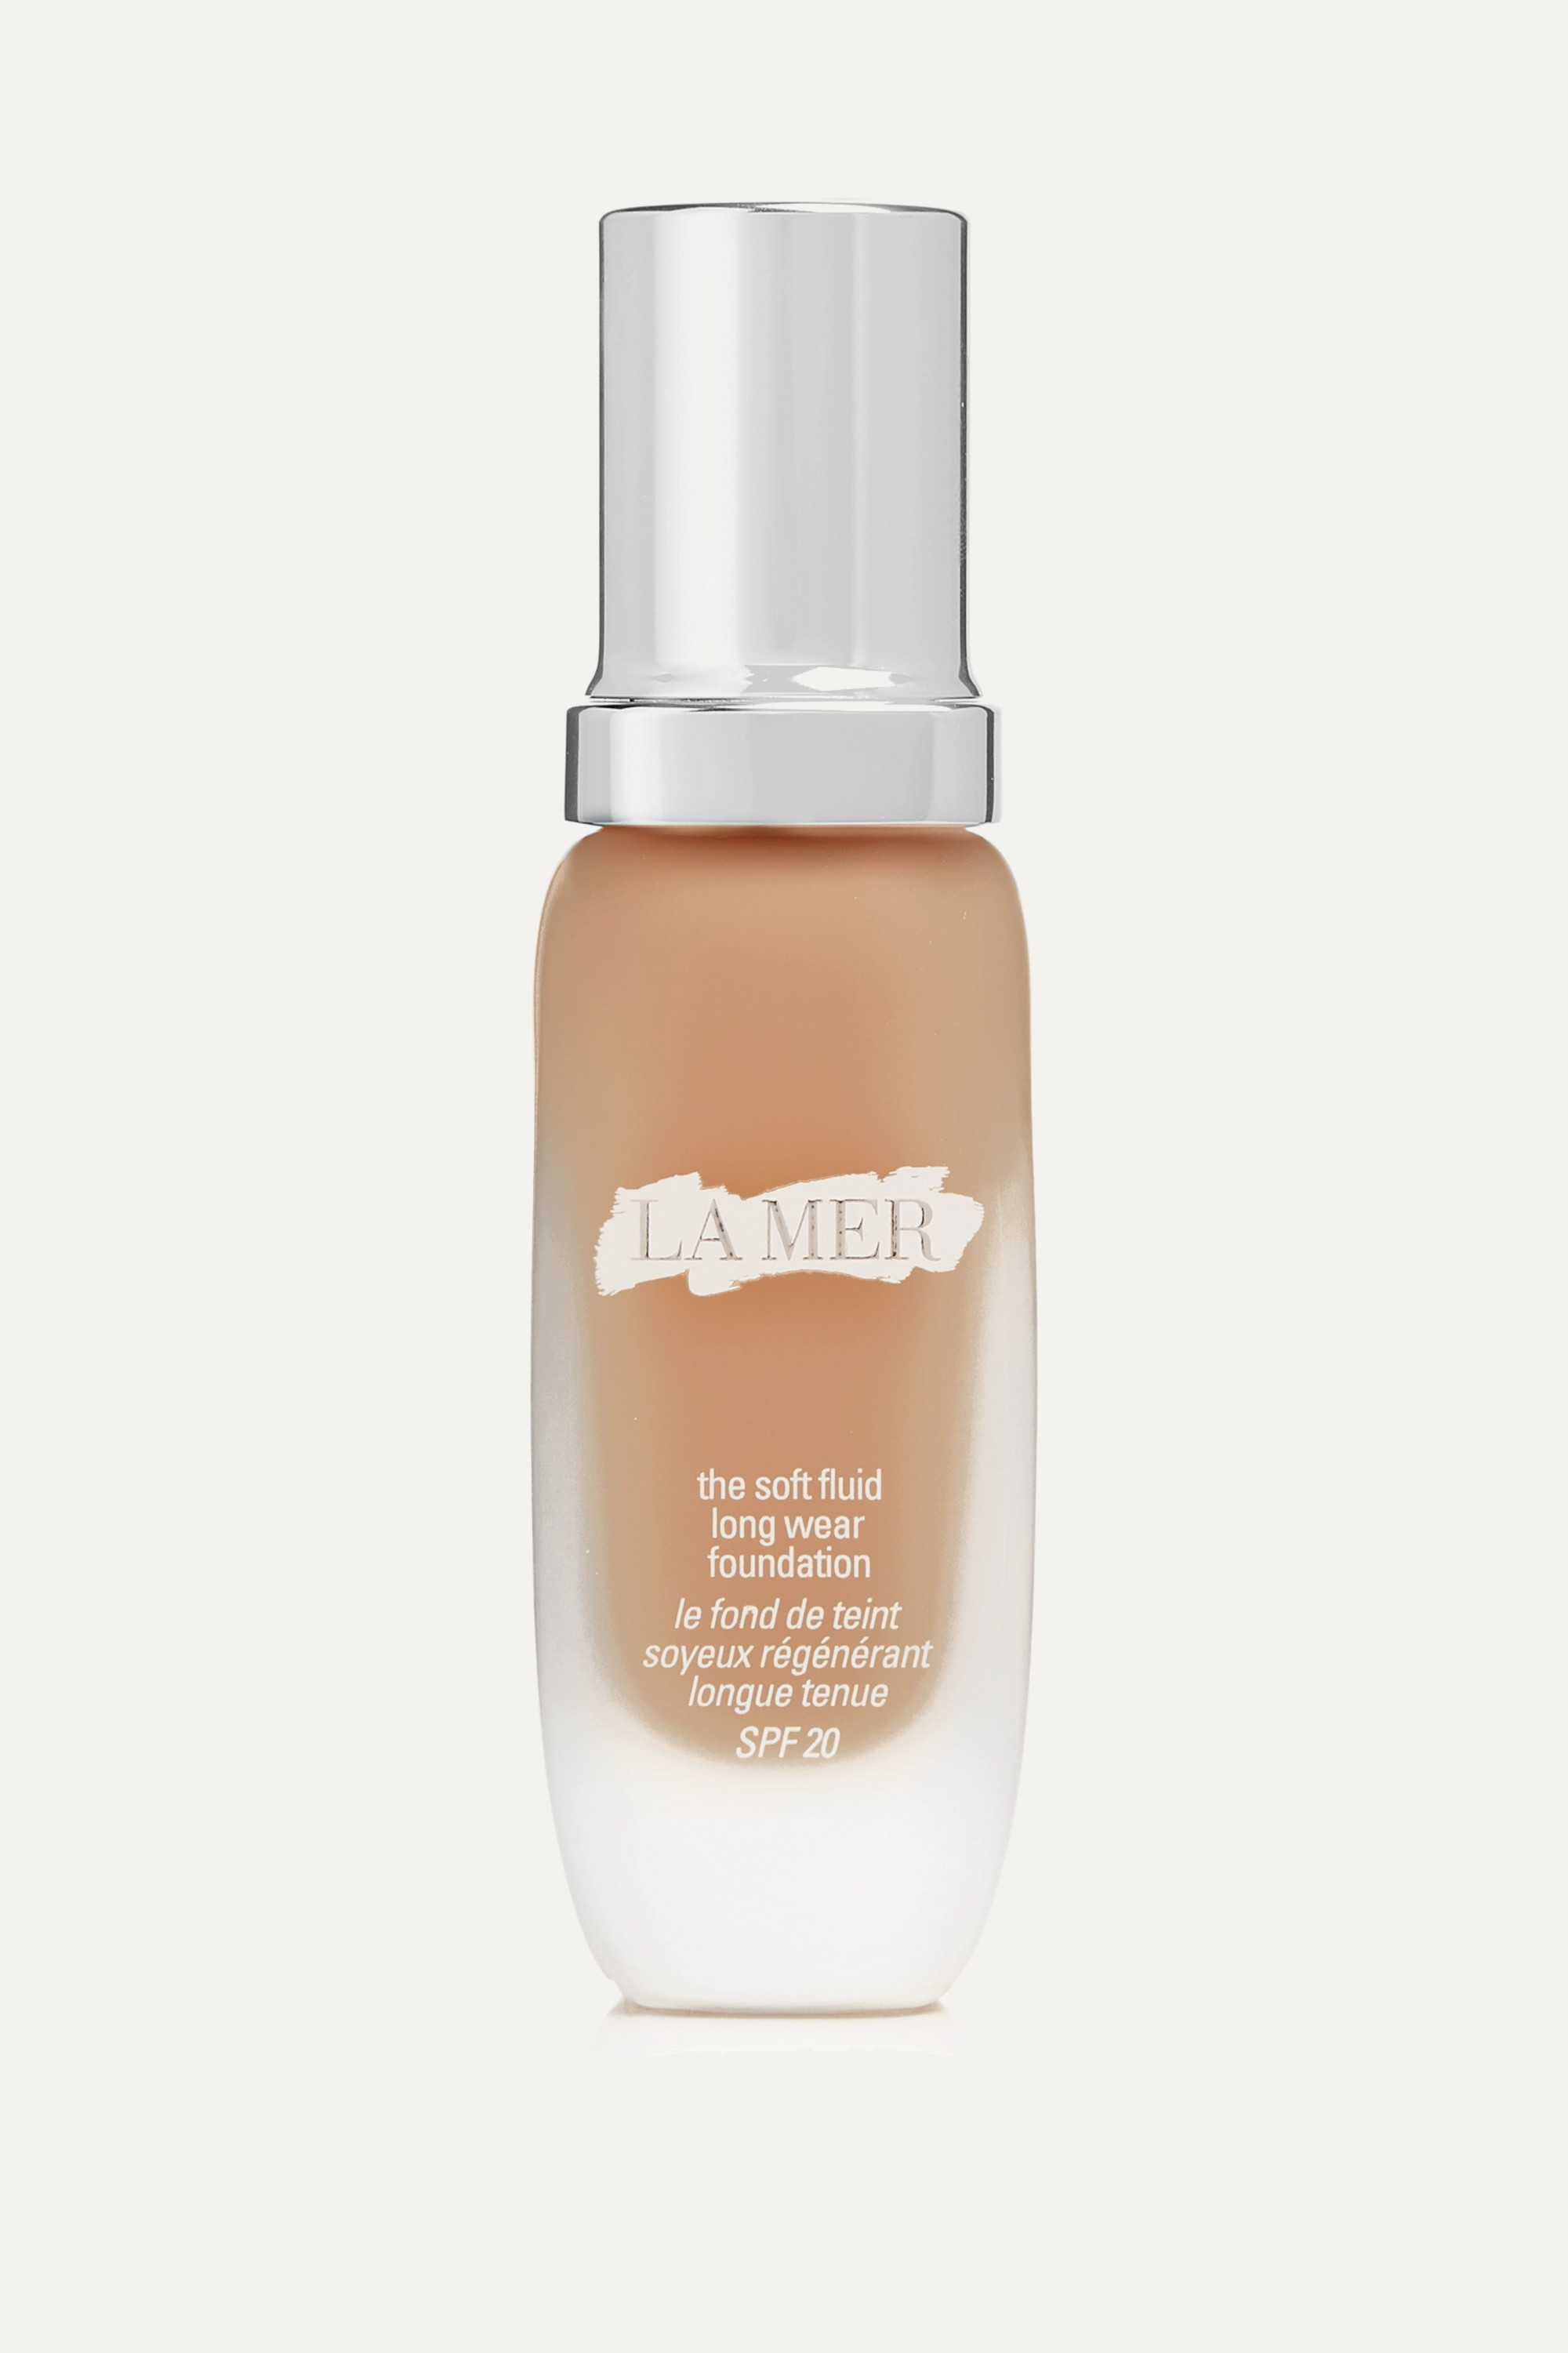 La Mer The Soft Fluid Long Wear Foundation SPF20 - 340 Suede, 30ml